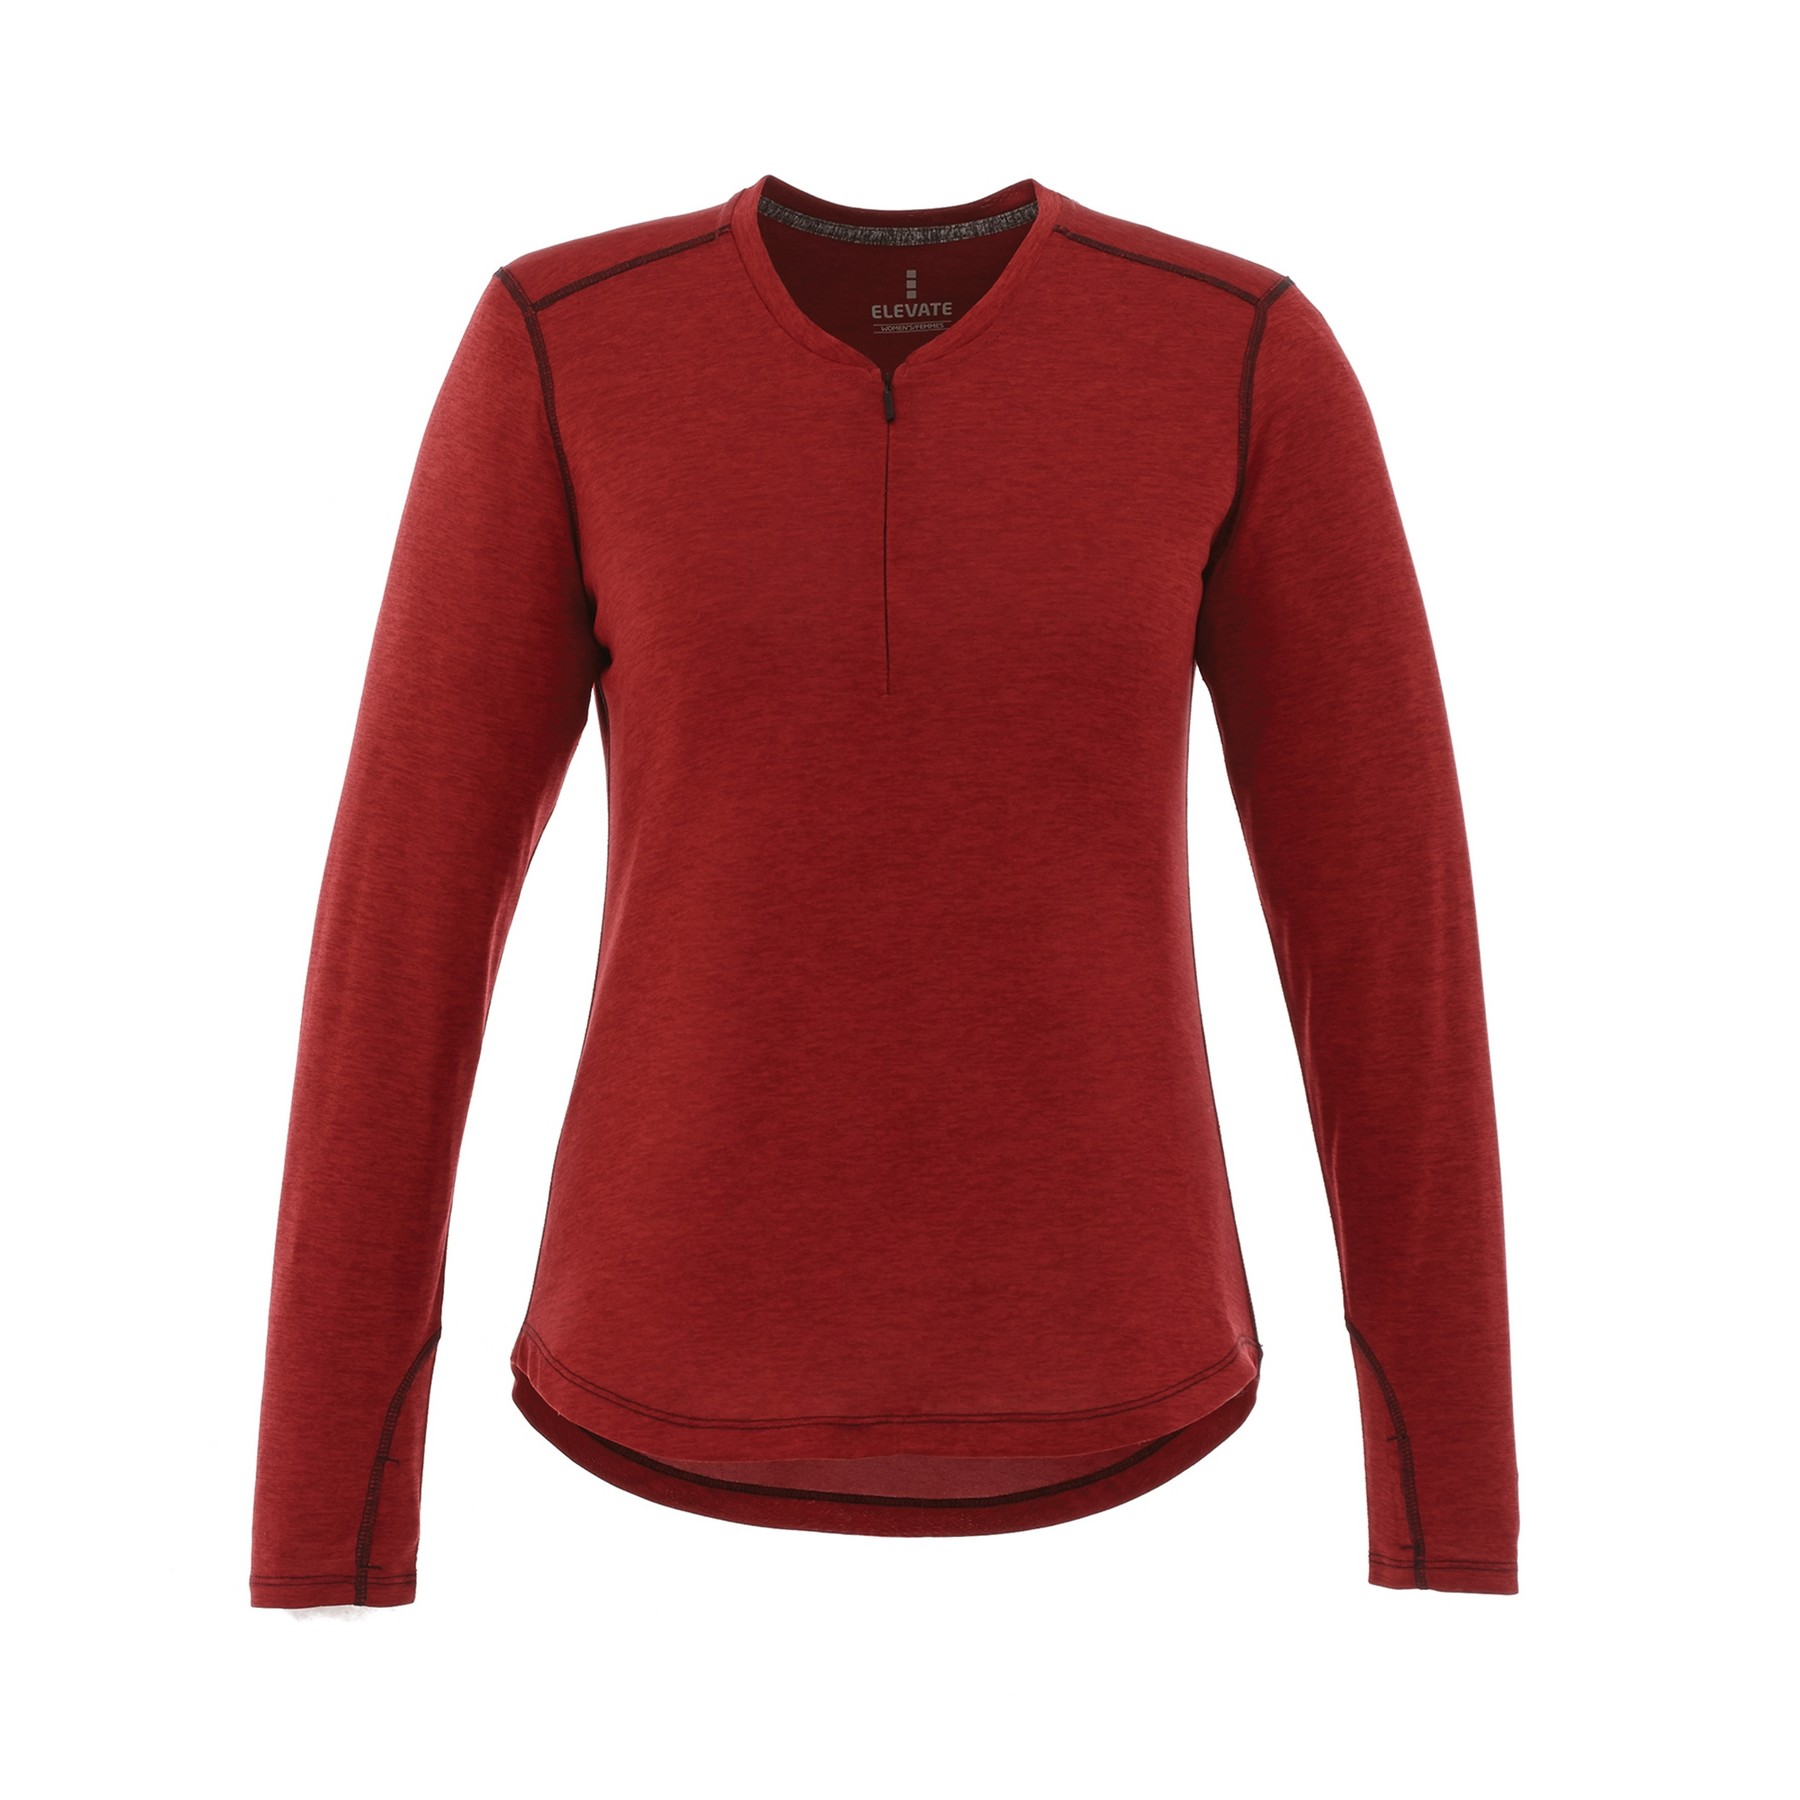 Quadra Long Sleeve Women's Knit Shirt, #97812 - Embroidered